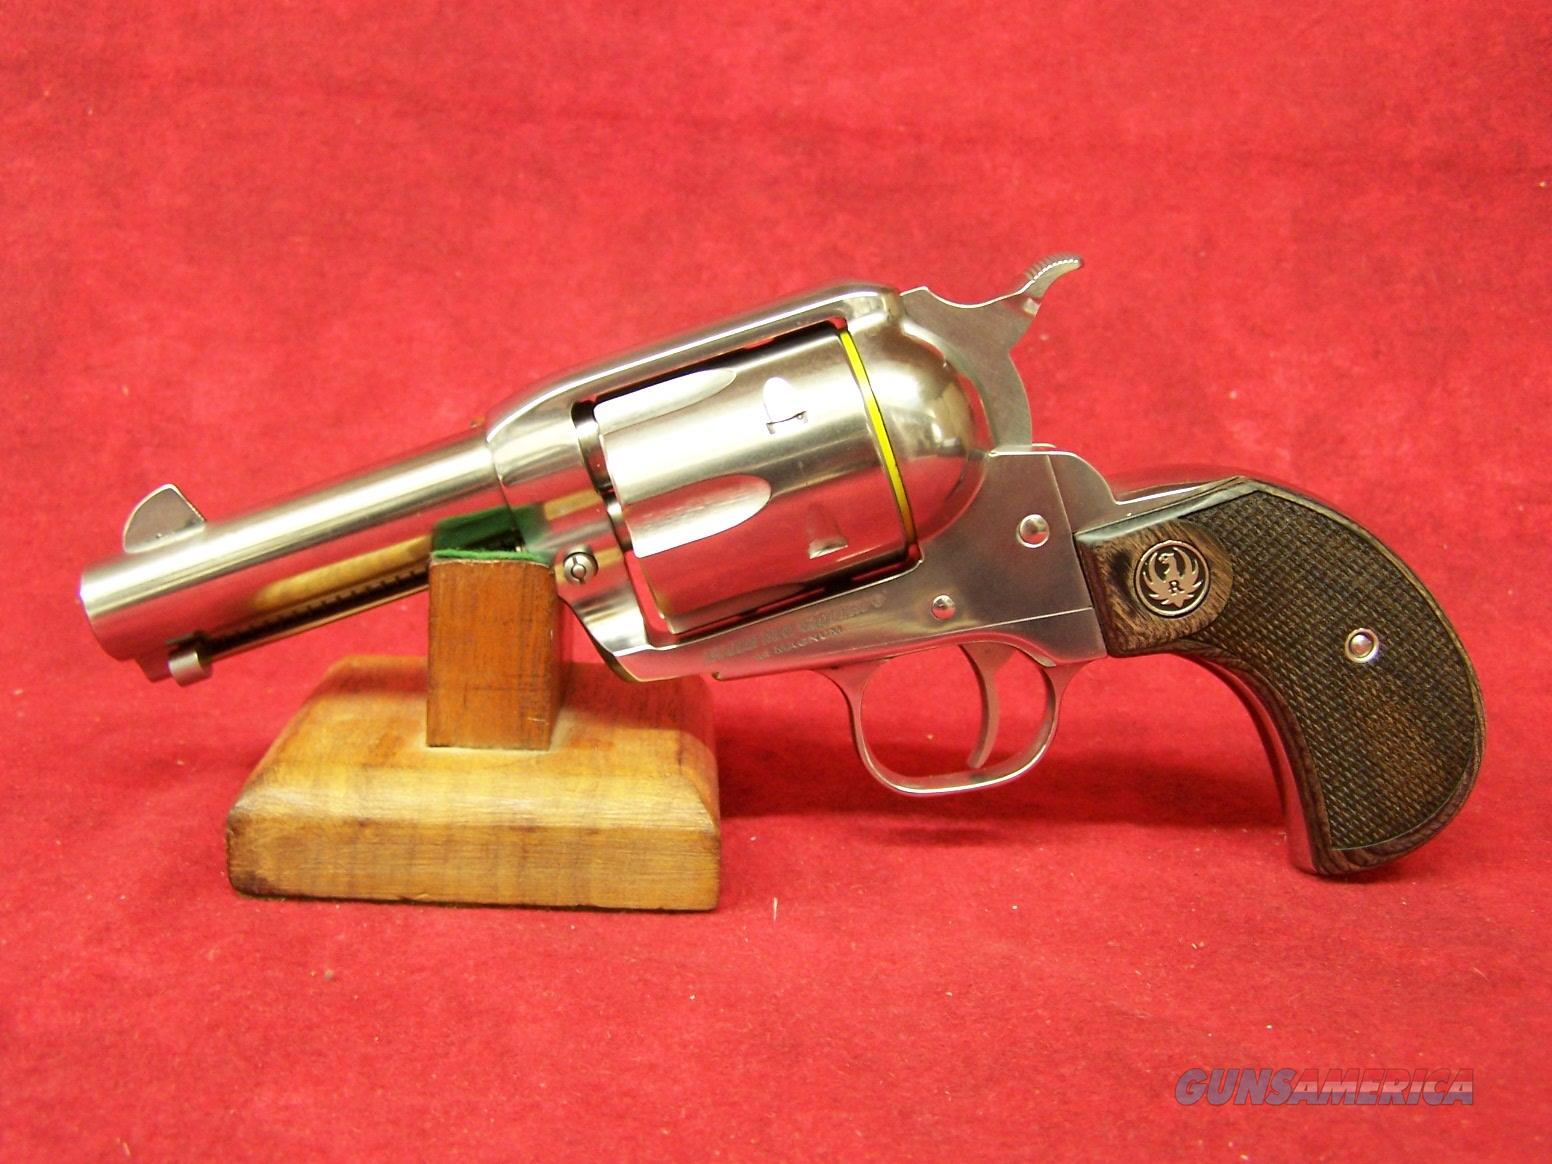 "RUGER VAQUERO 44 MAG 3.75"" SS BIRDS-HEAD & ALTAMONT GR (10596)  Guns > Pistols > Ruger Single Action Revolvers > Cowboy Action"